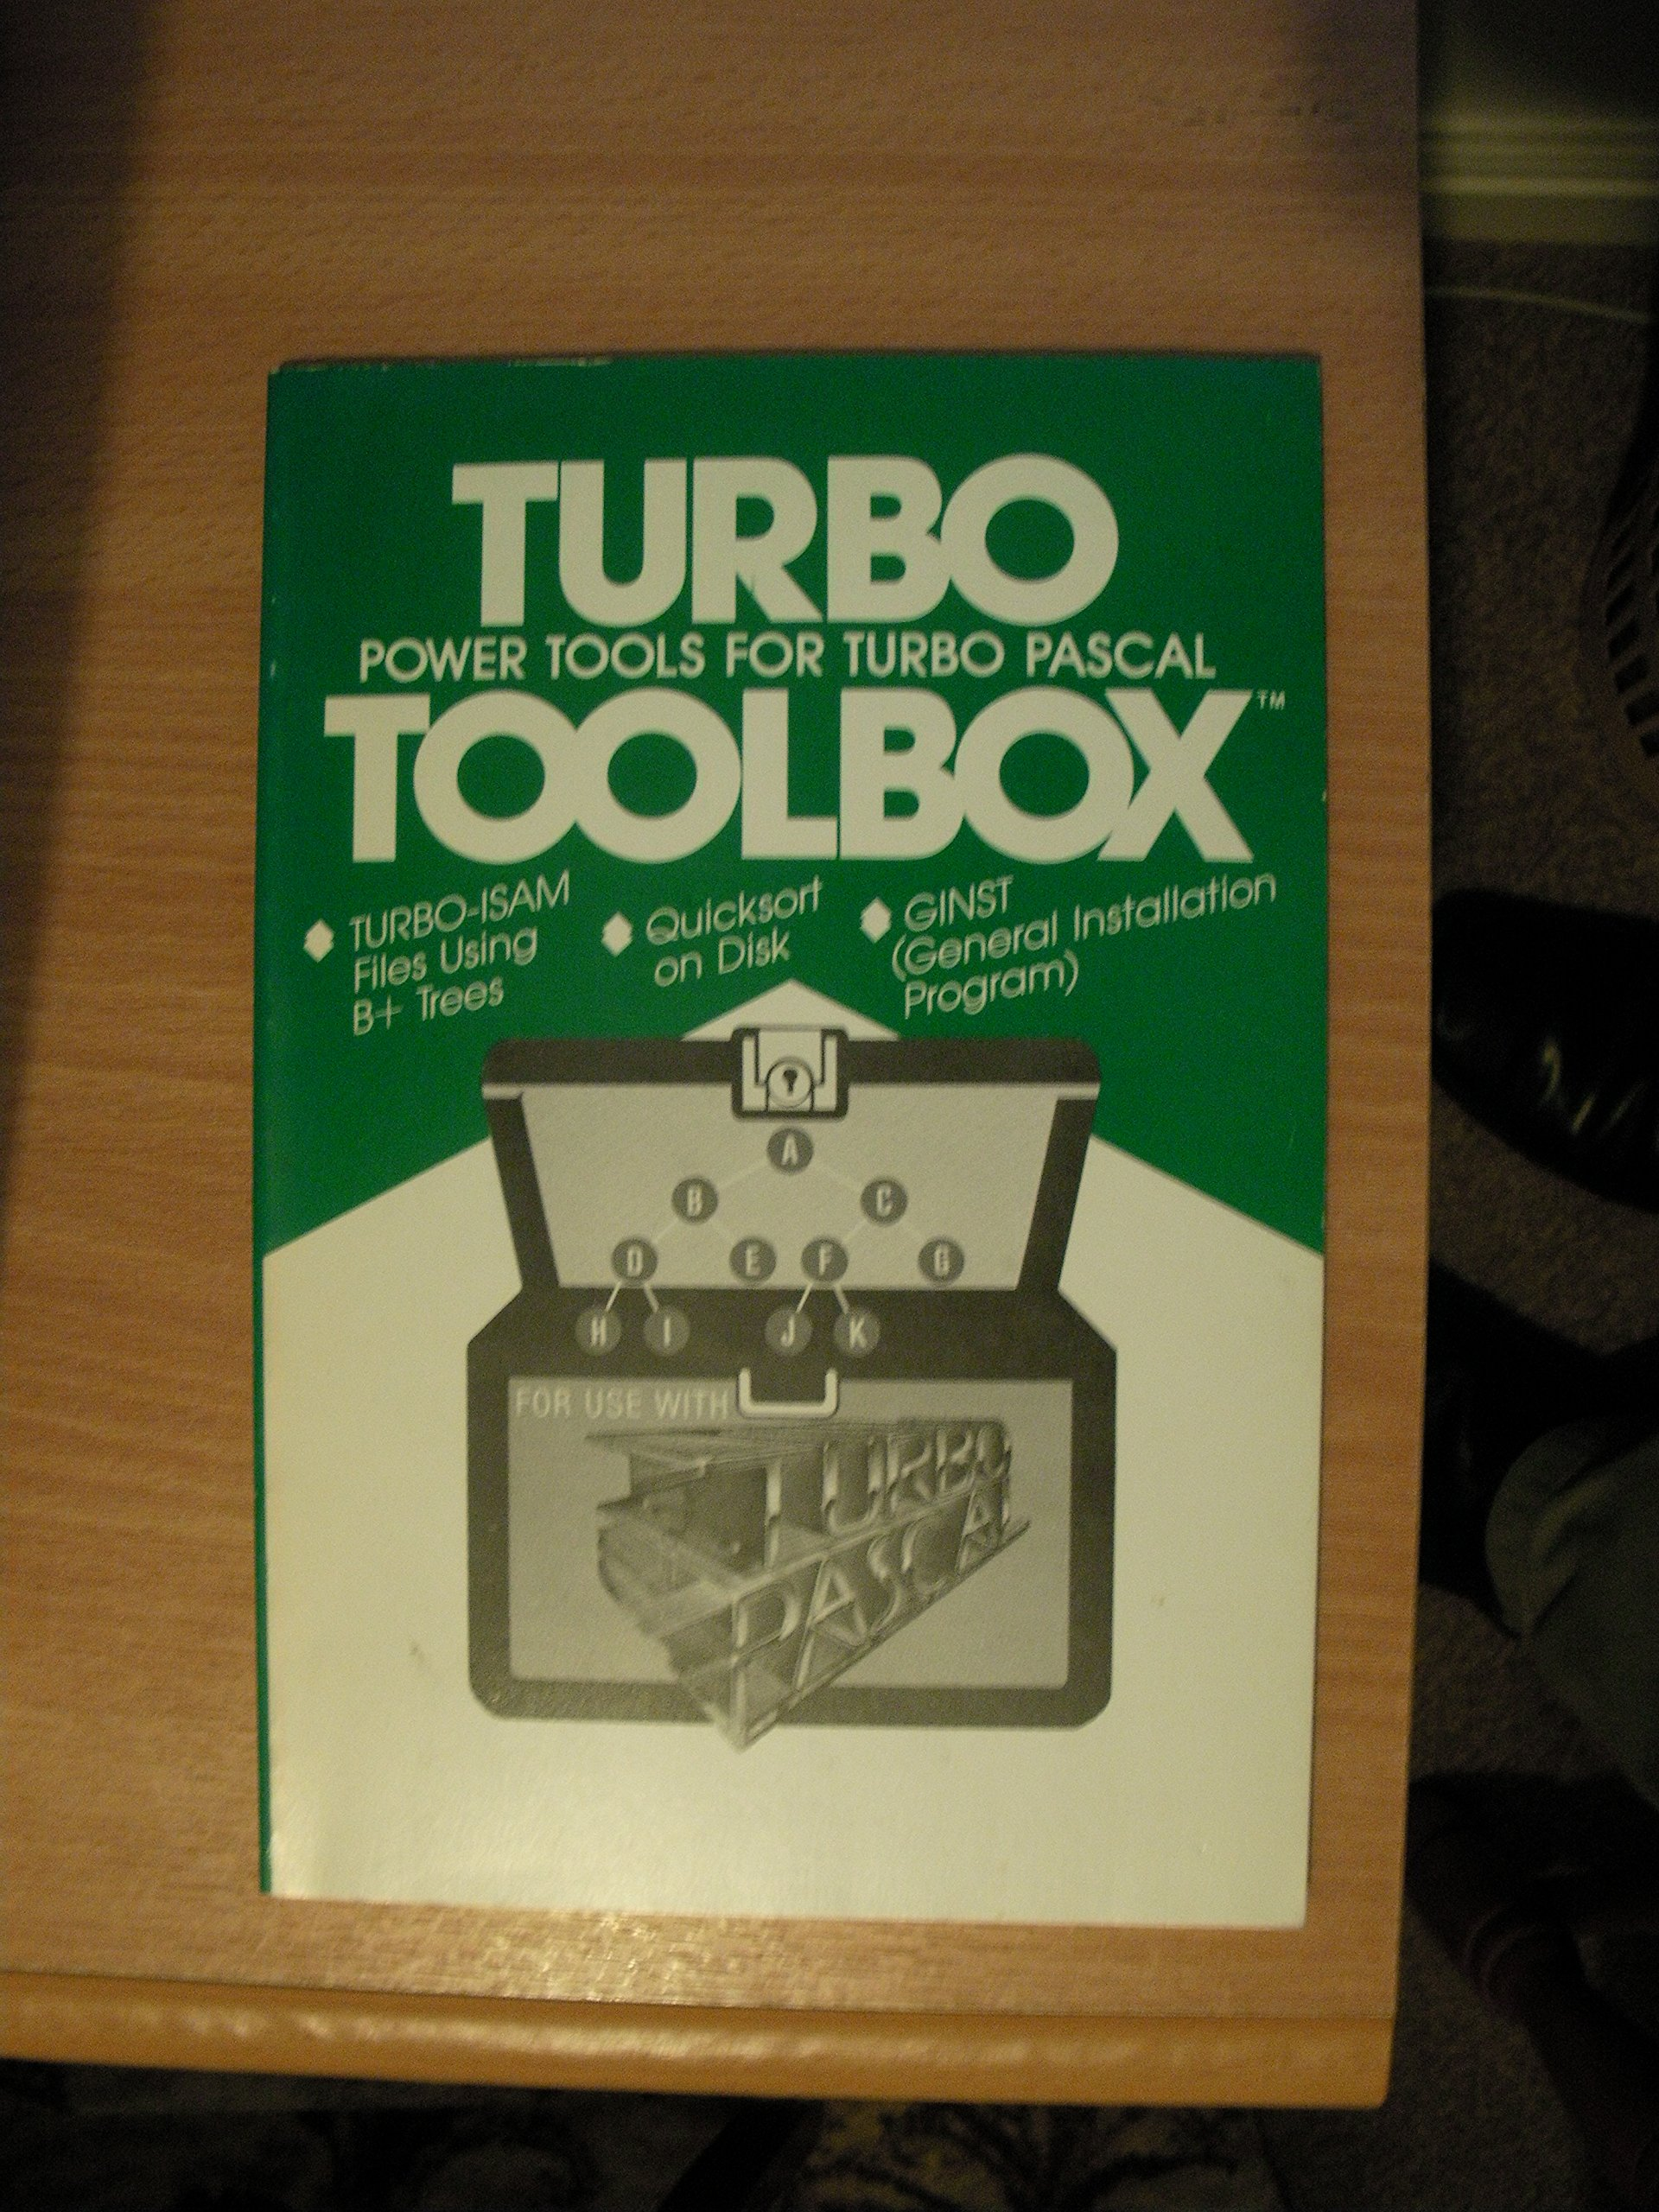 Turbo Toolbox: Power Tools for Turbo Pascal